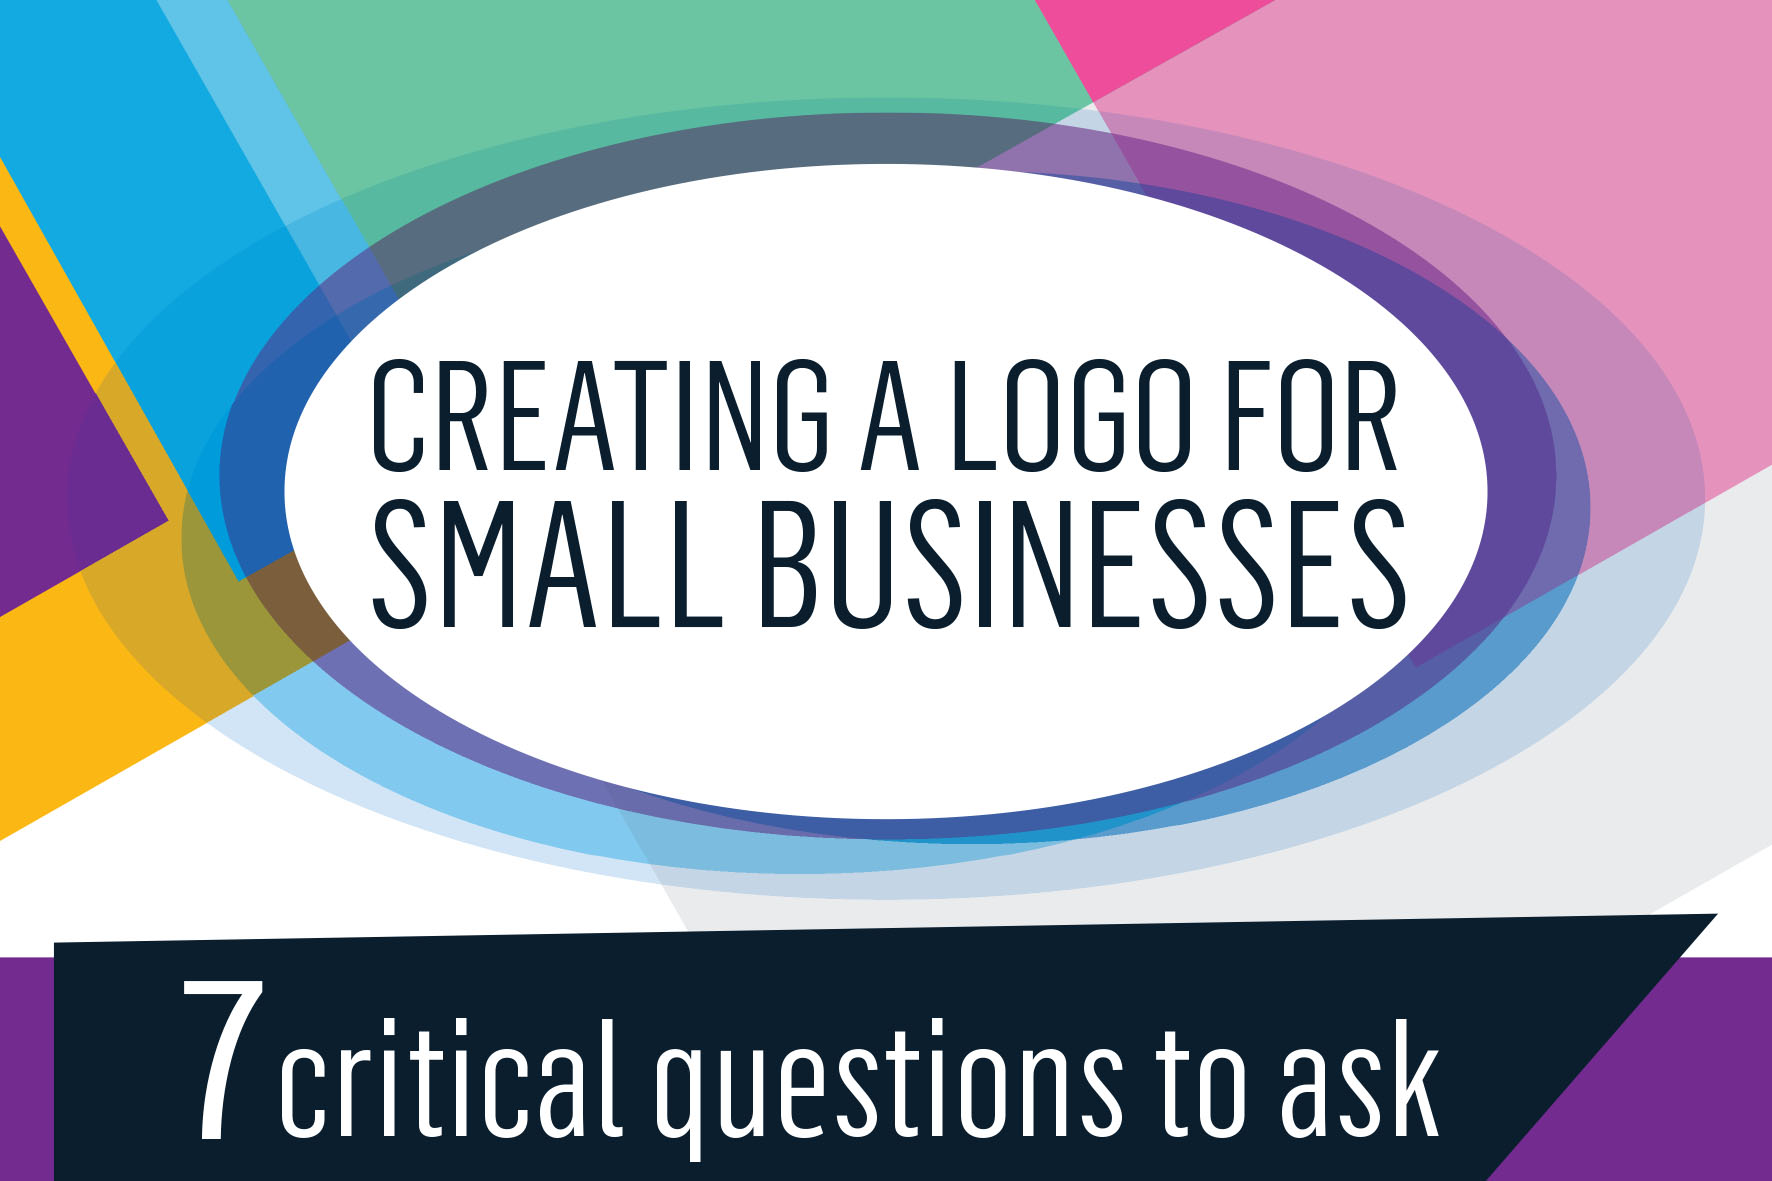 Creating a logo for small businesses